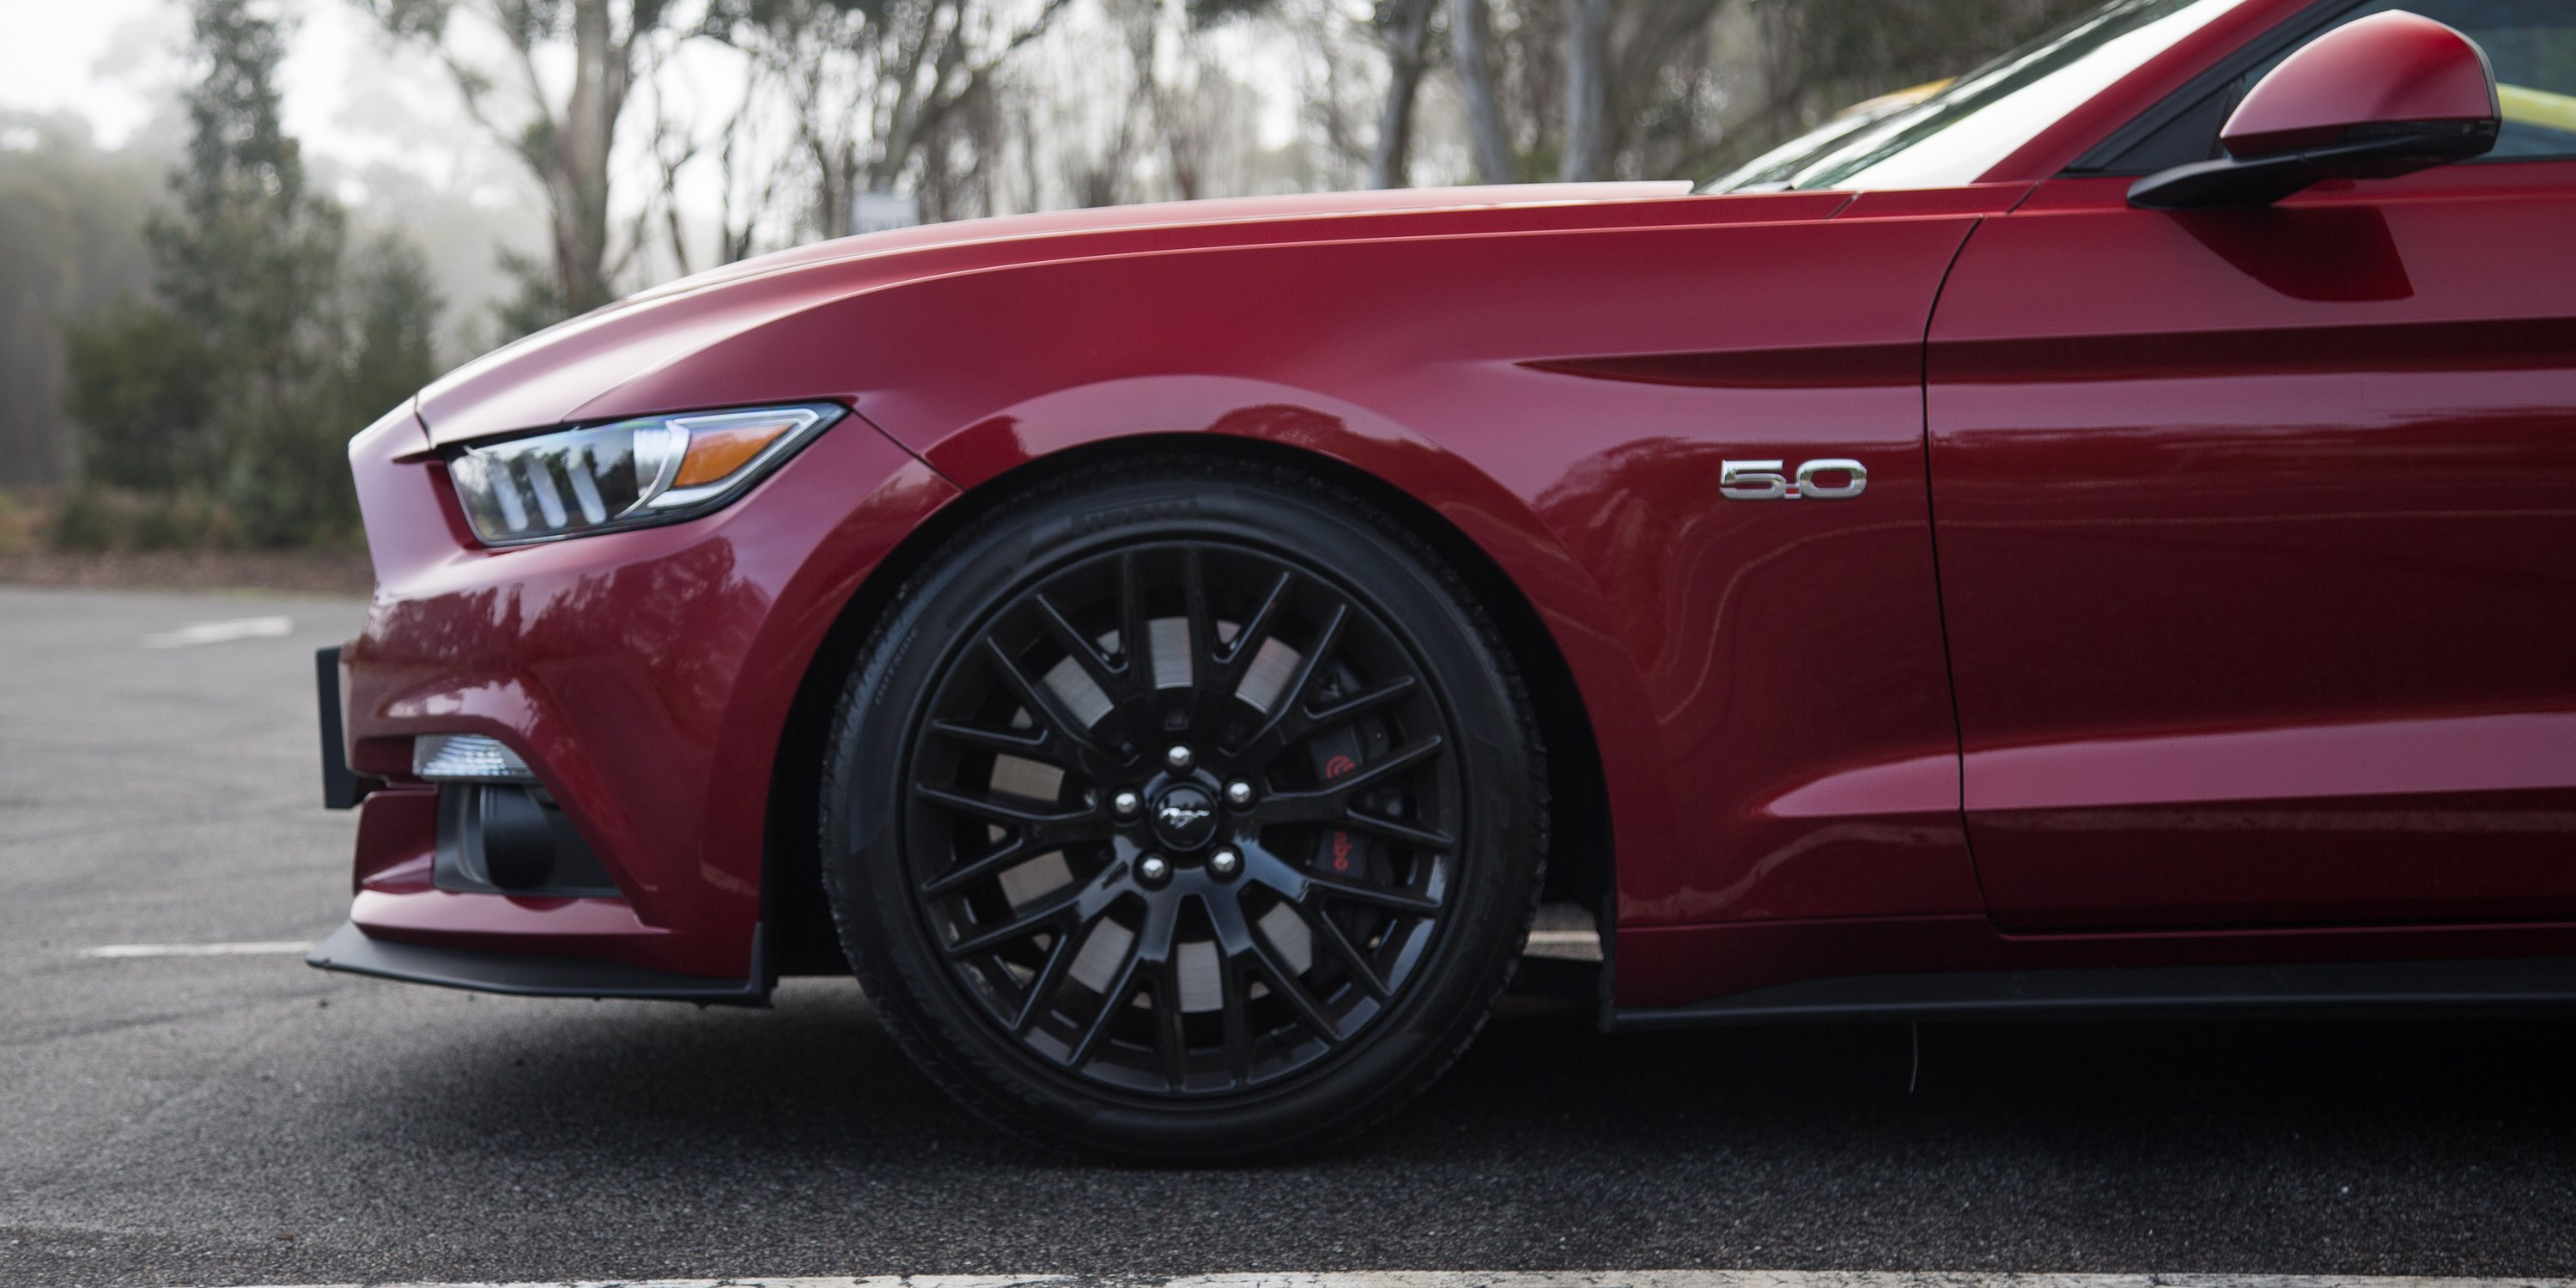 Ford Mustang GT Fastback v Ford Mustang GT Performance ...